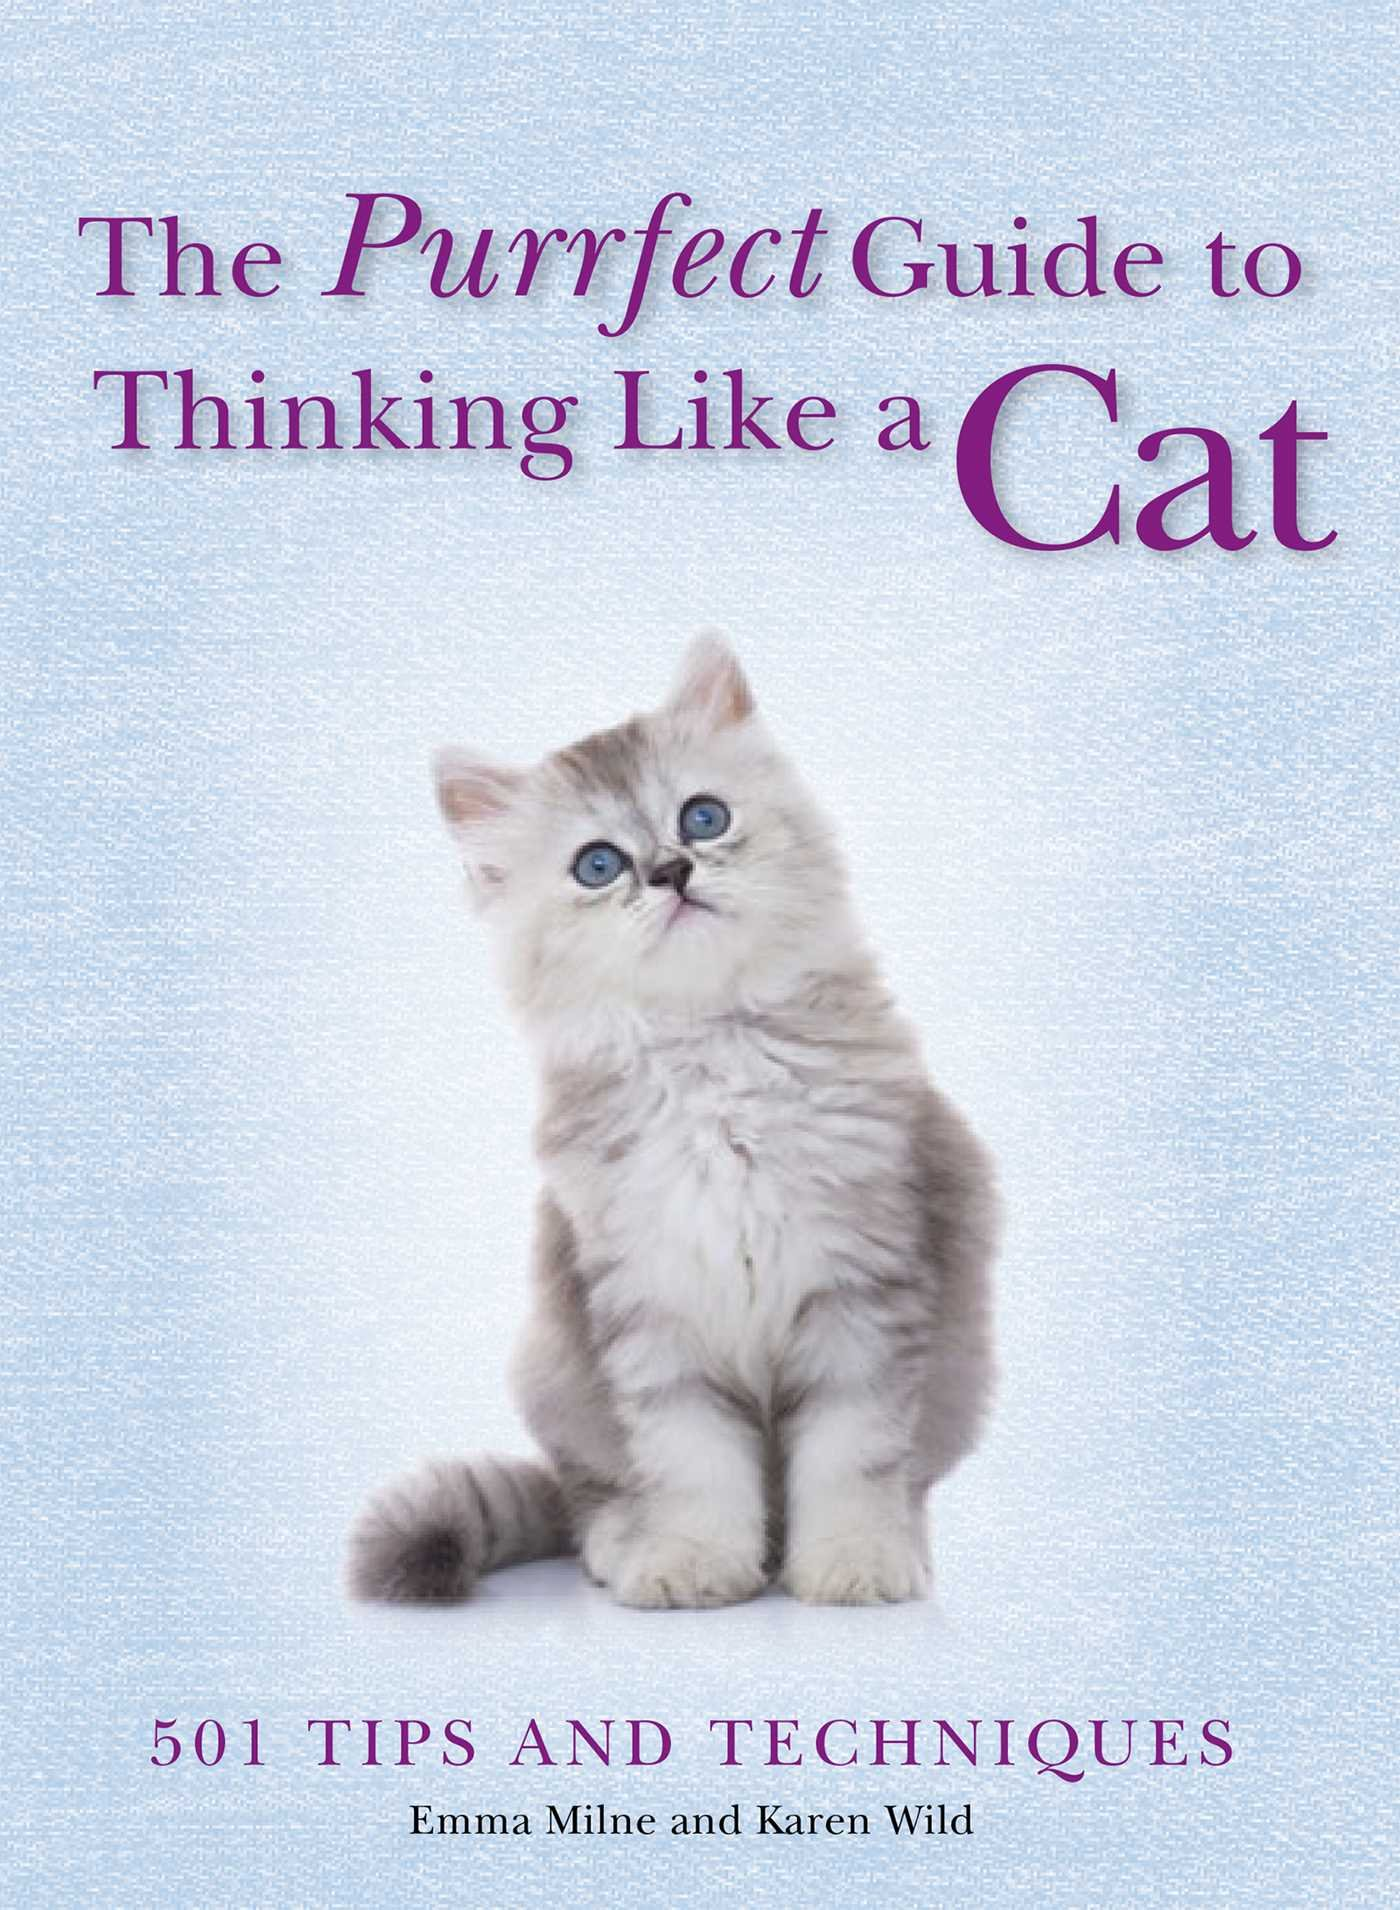 The Purrfect Guide to Thinking Like a Cat: 501 Tips and Techniques